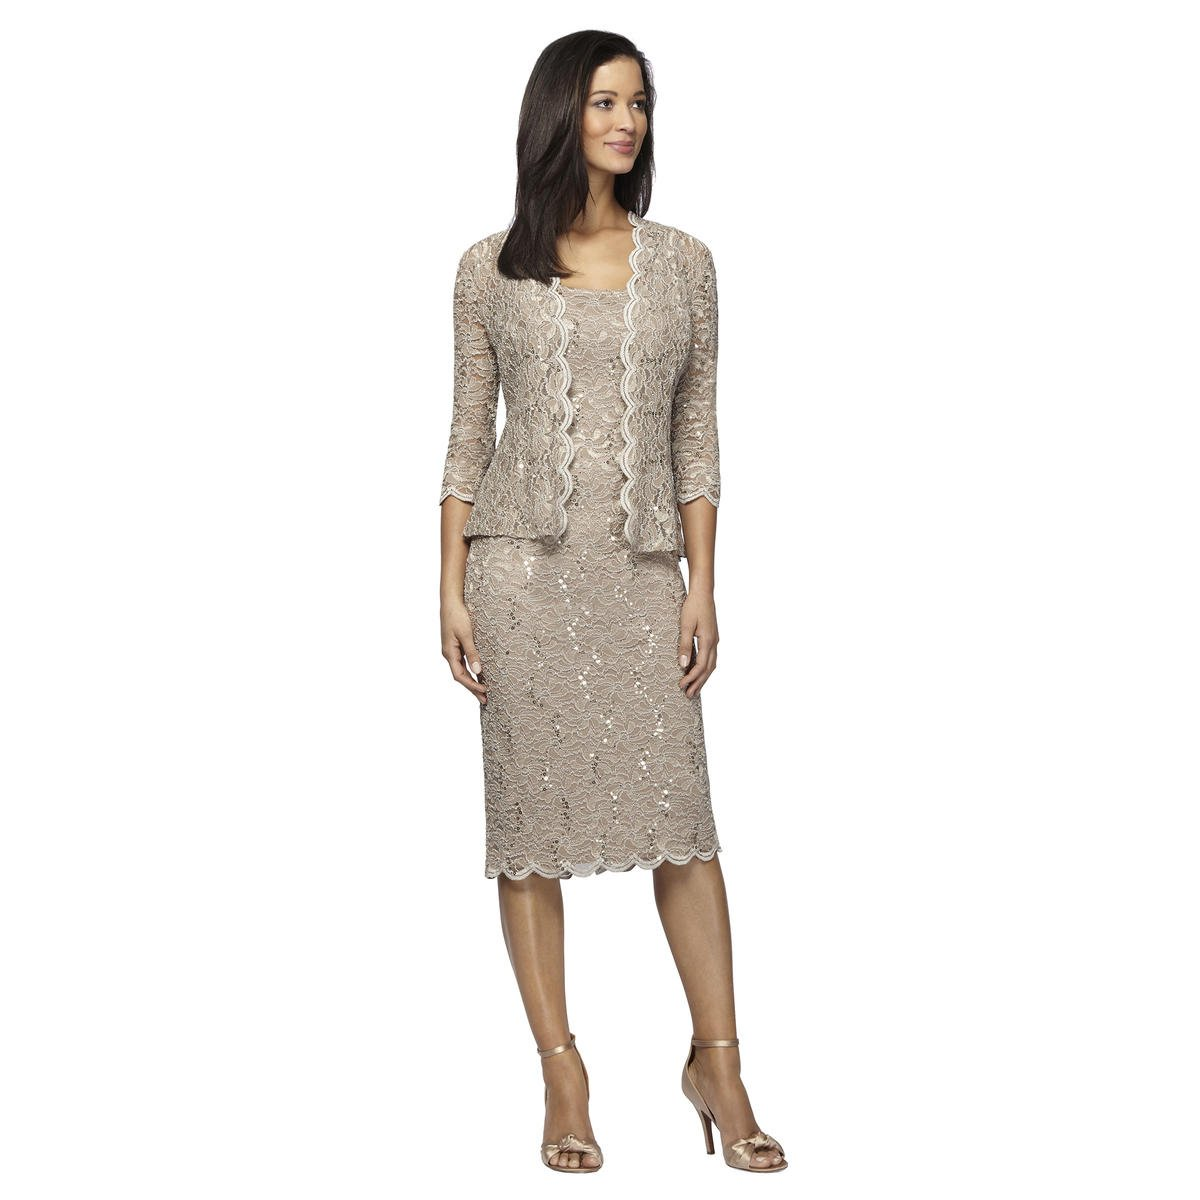 ALEX APPAREL GROUP INC - Sequined Lace Sheath Dress with Jacket